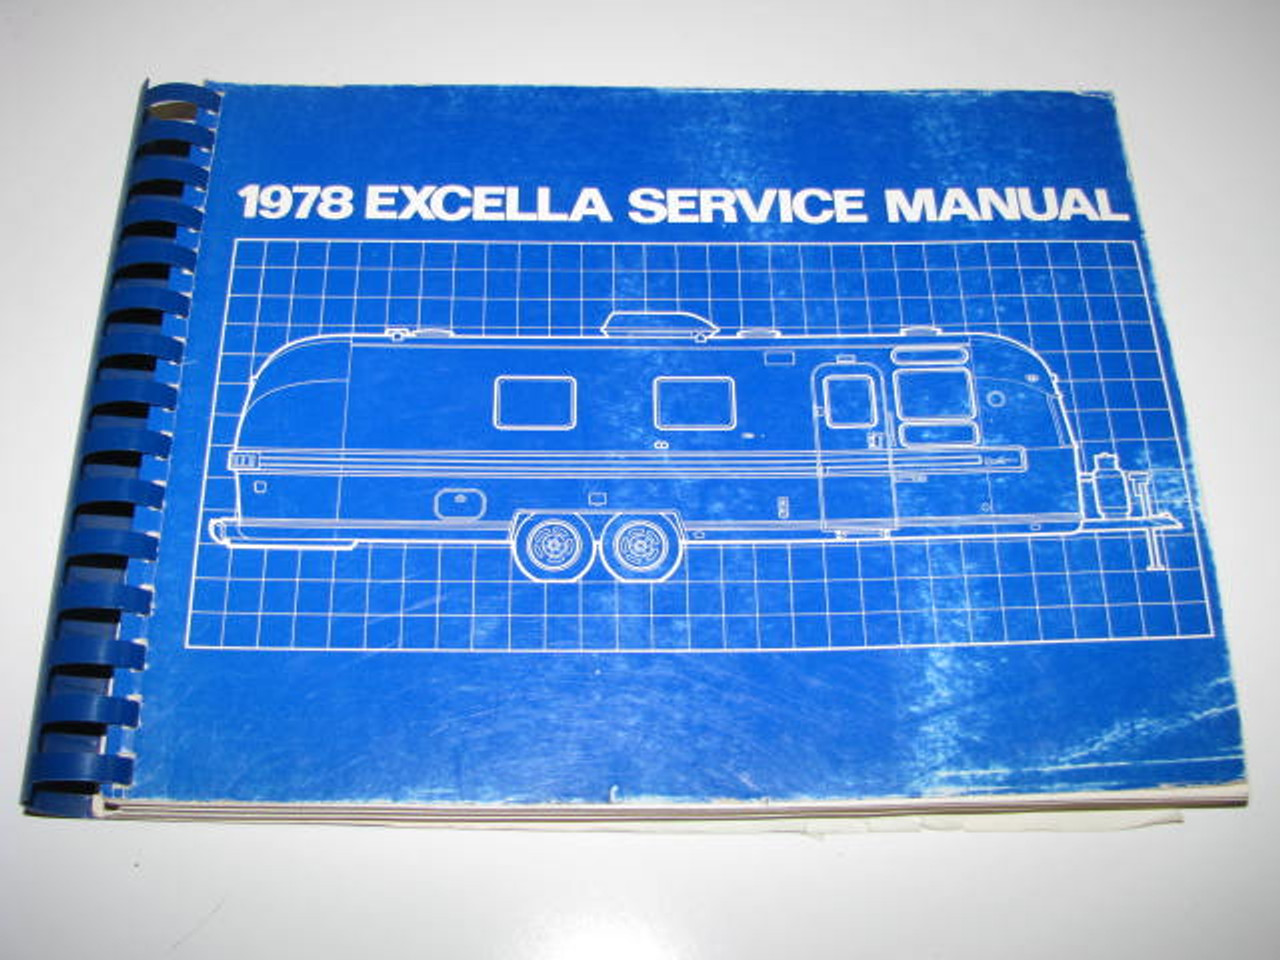 1978 Airstream Excella Service Manual (BL014) FRONT COVER